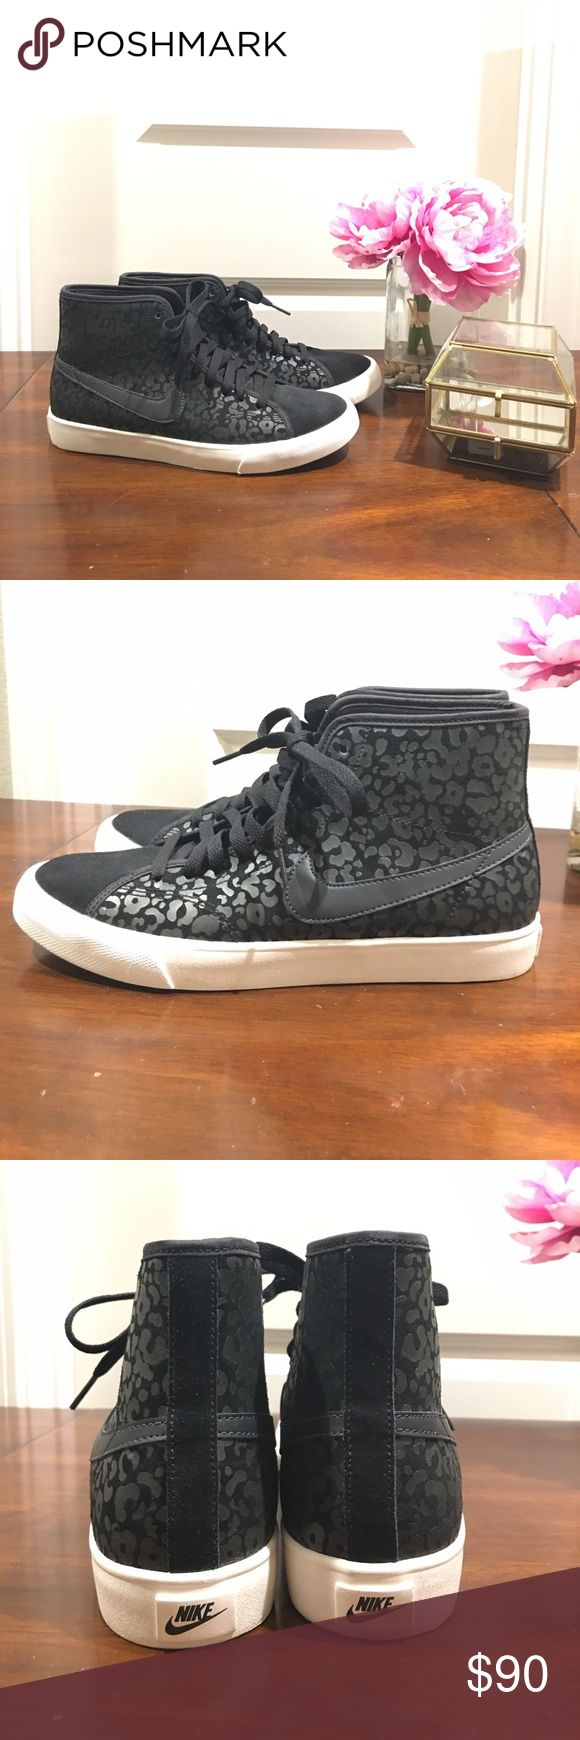 "NWOT Black Cheetah Print Nikes These black on black cheetah print high top Nikes have never been worn. I was a little too eager that I was going to change my casual ""street style"" and these beauties have been sitting in my guest closet ever since. They need a new home! Nike Shoes Sneakers"